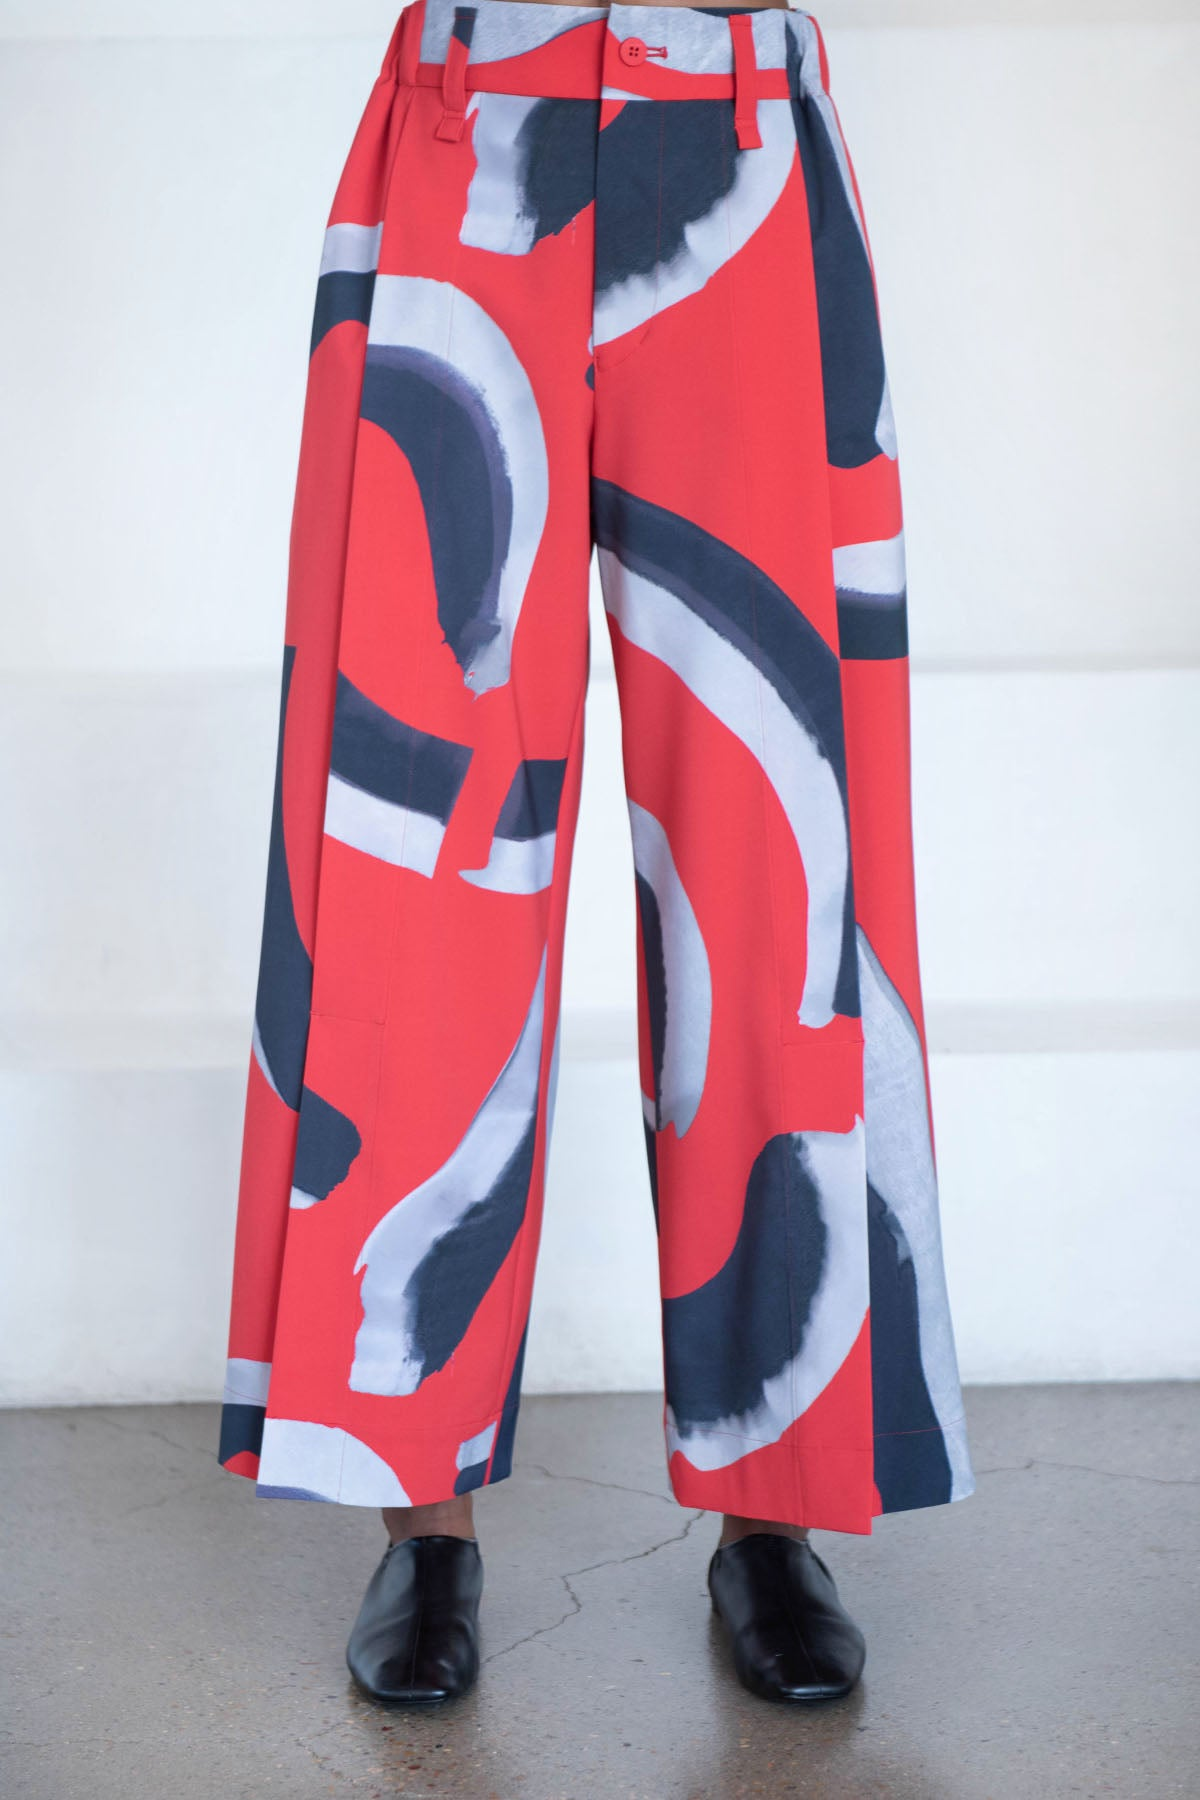 Issey Miyake - shadowing bottom pants, red